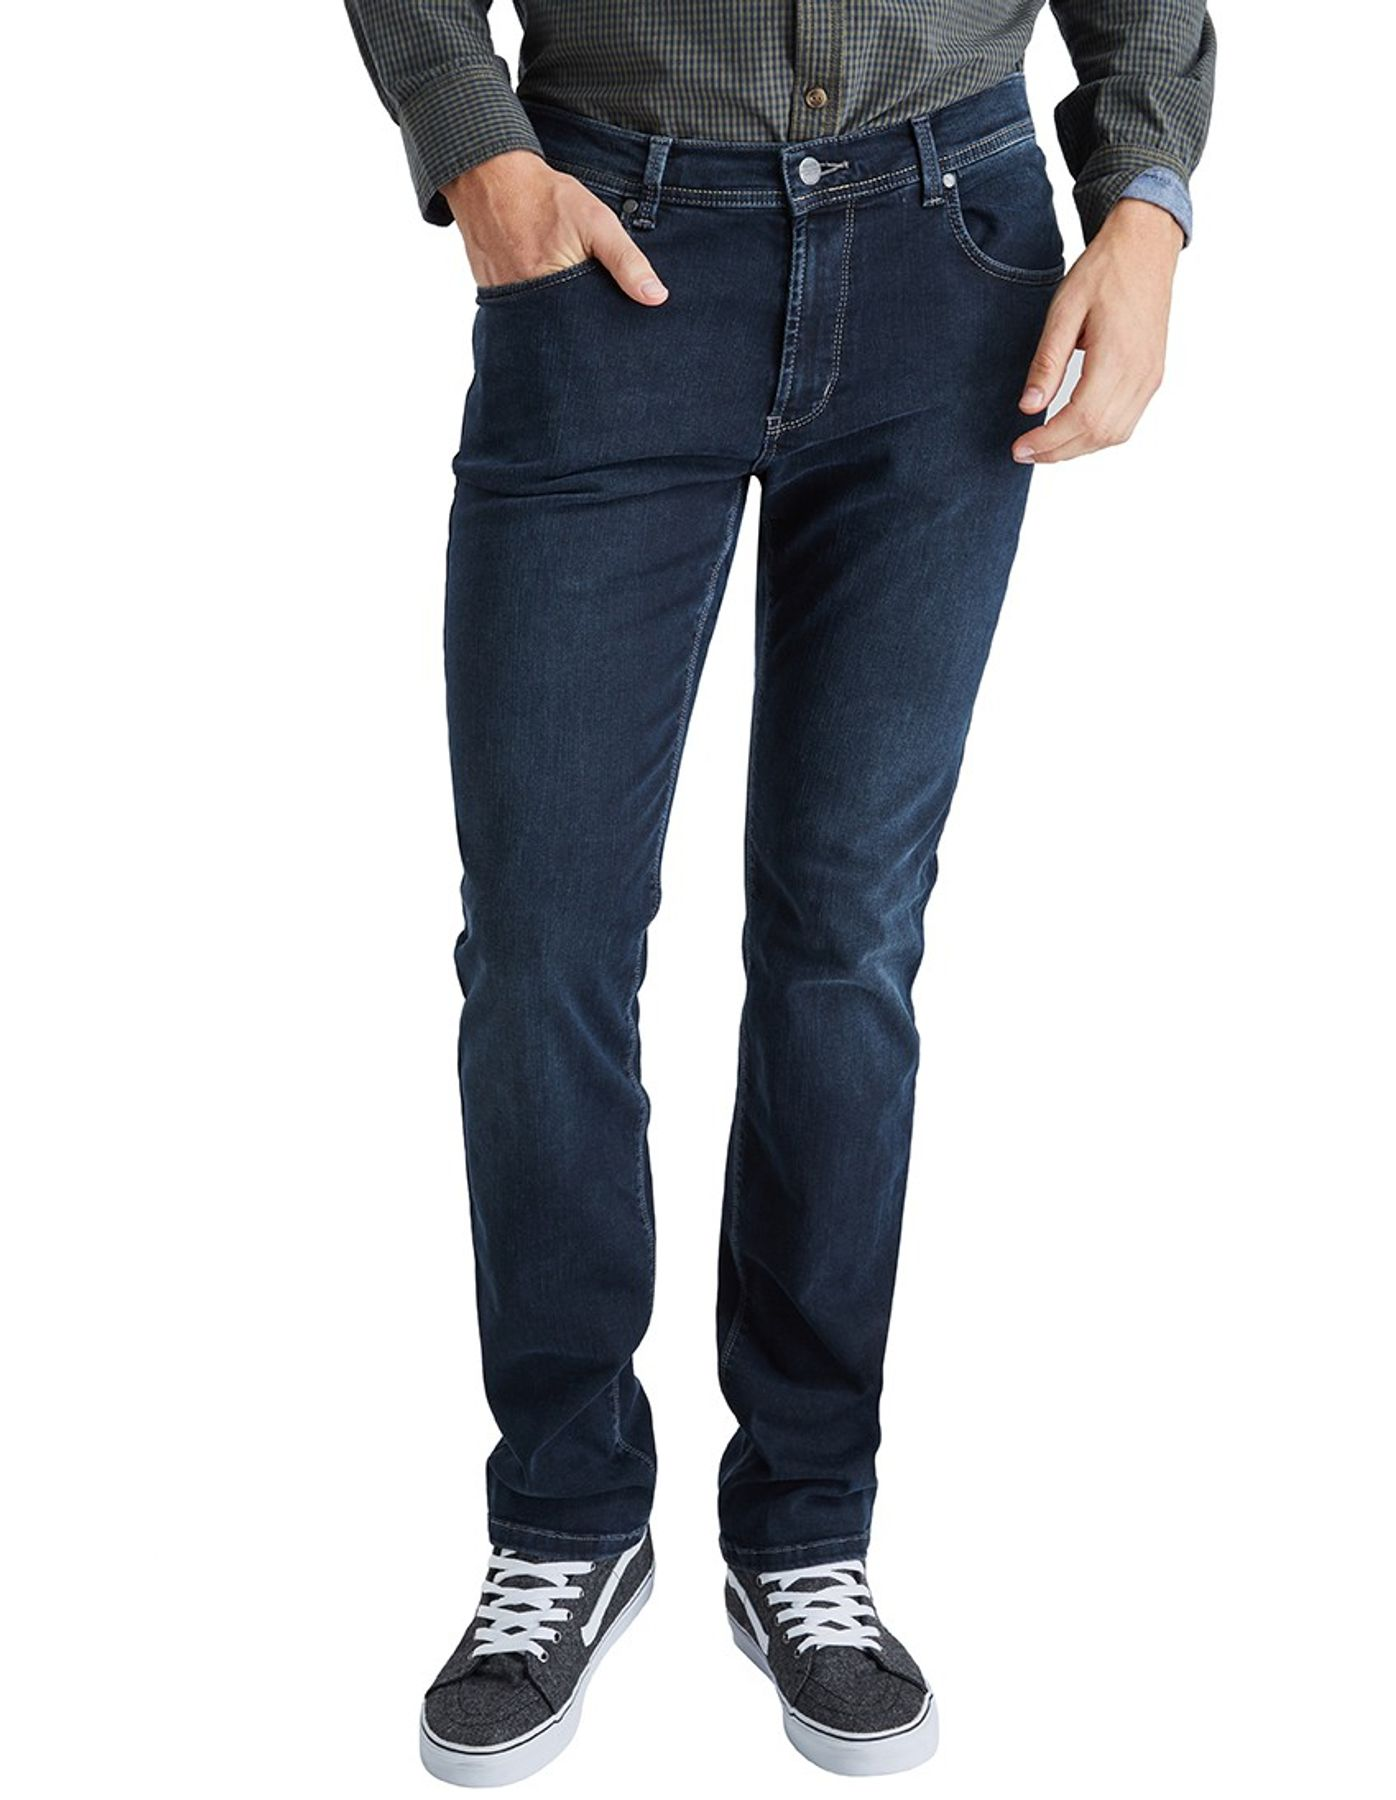 Pioneer - Herren 5-Pocket Jeans in der Farbe dark used, Regular Fit, Rando (1680 9886 14) – Bild 1